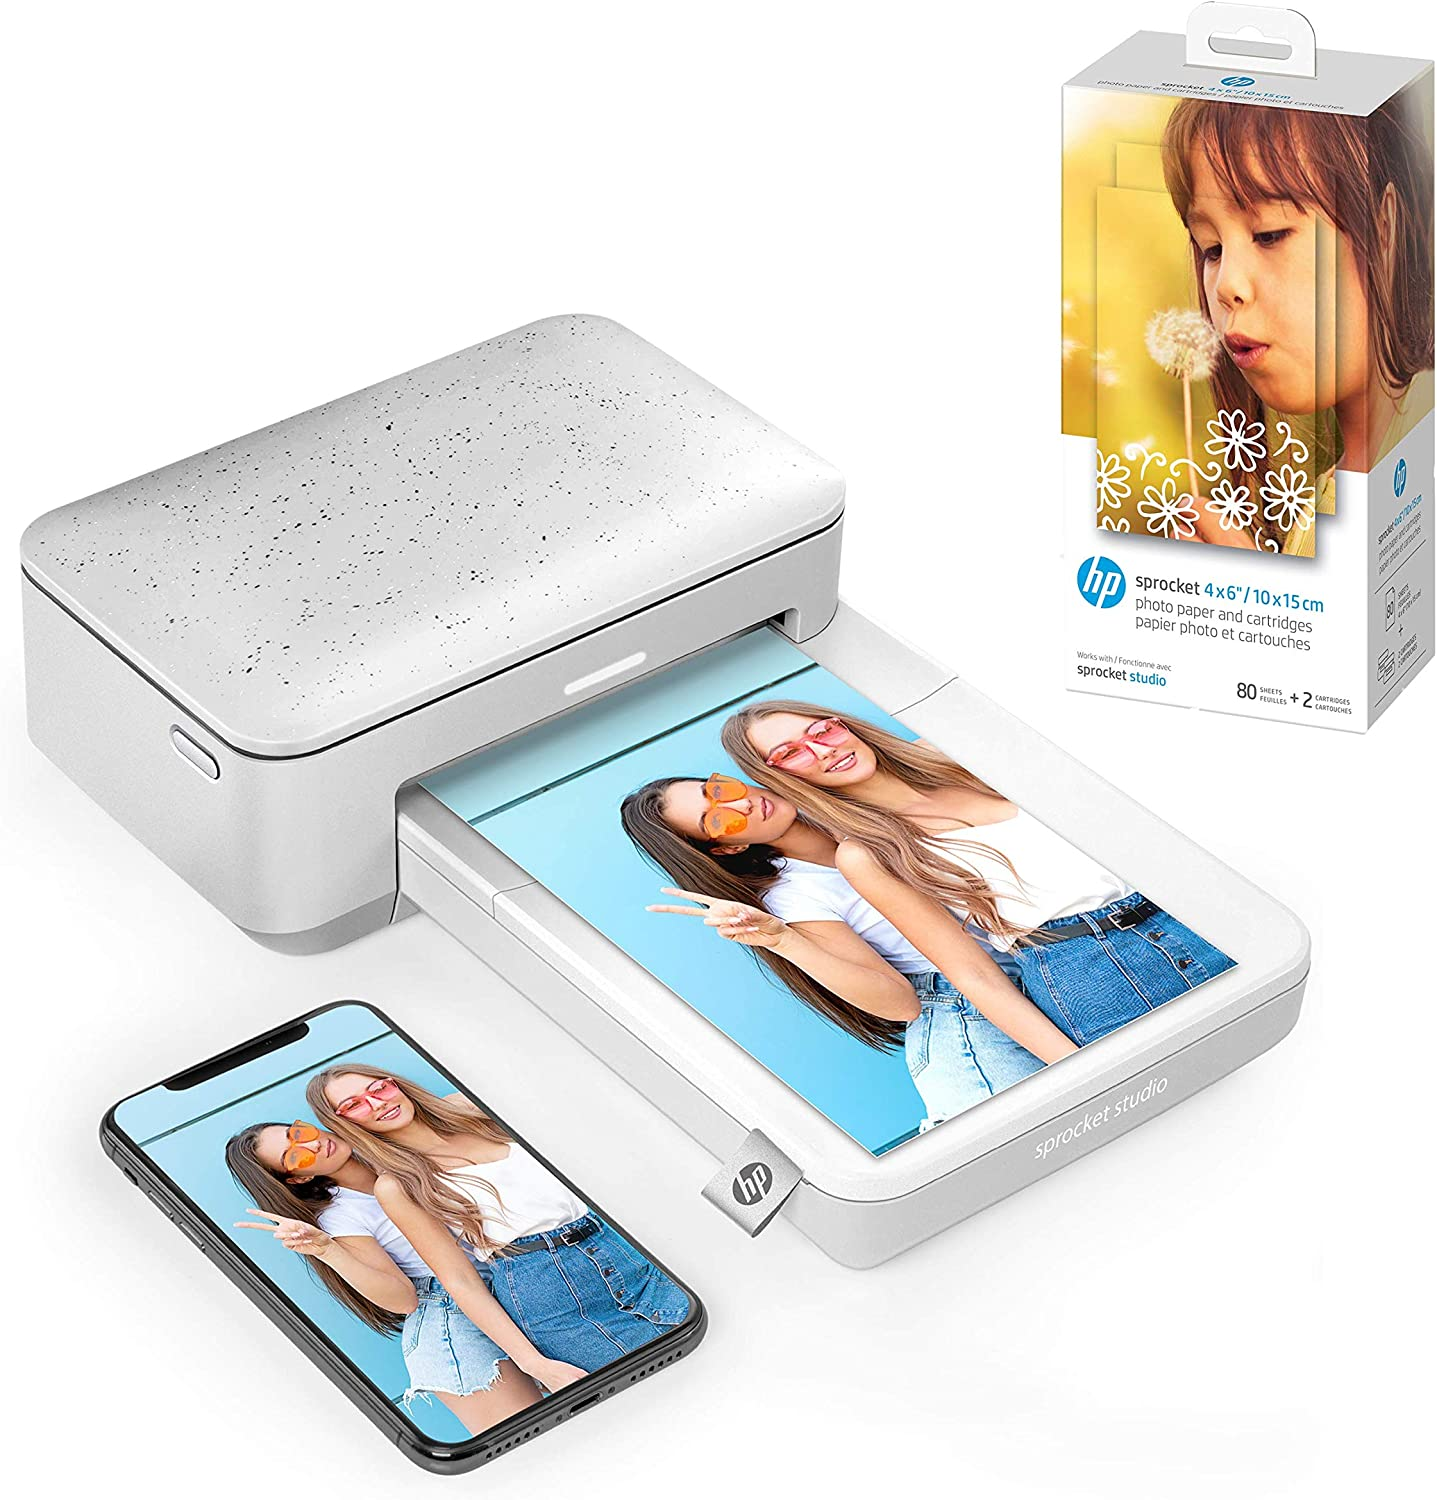 """HP Sprocket Studio 4x6"""" Instant Photo Printer – Print Photos from Your iOS, Android Devices & Social Media with HP Sprocket Studio 4x6"""